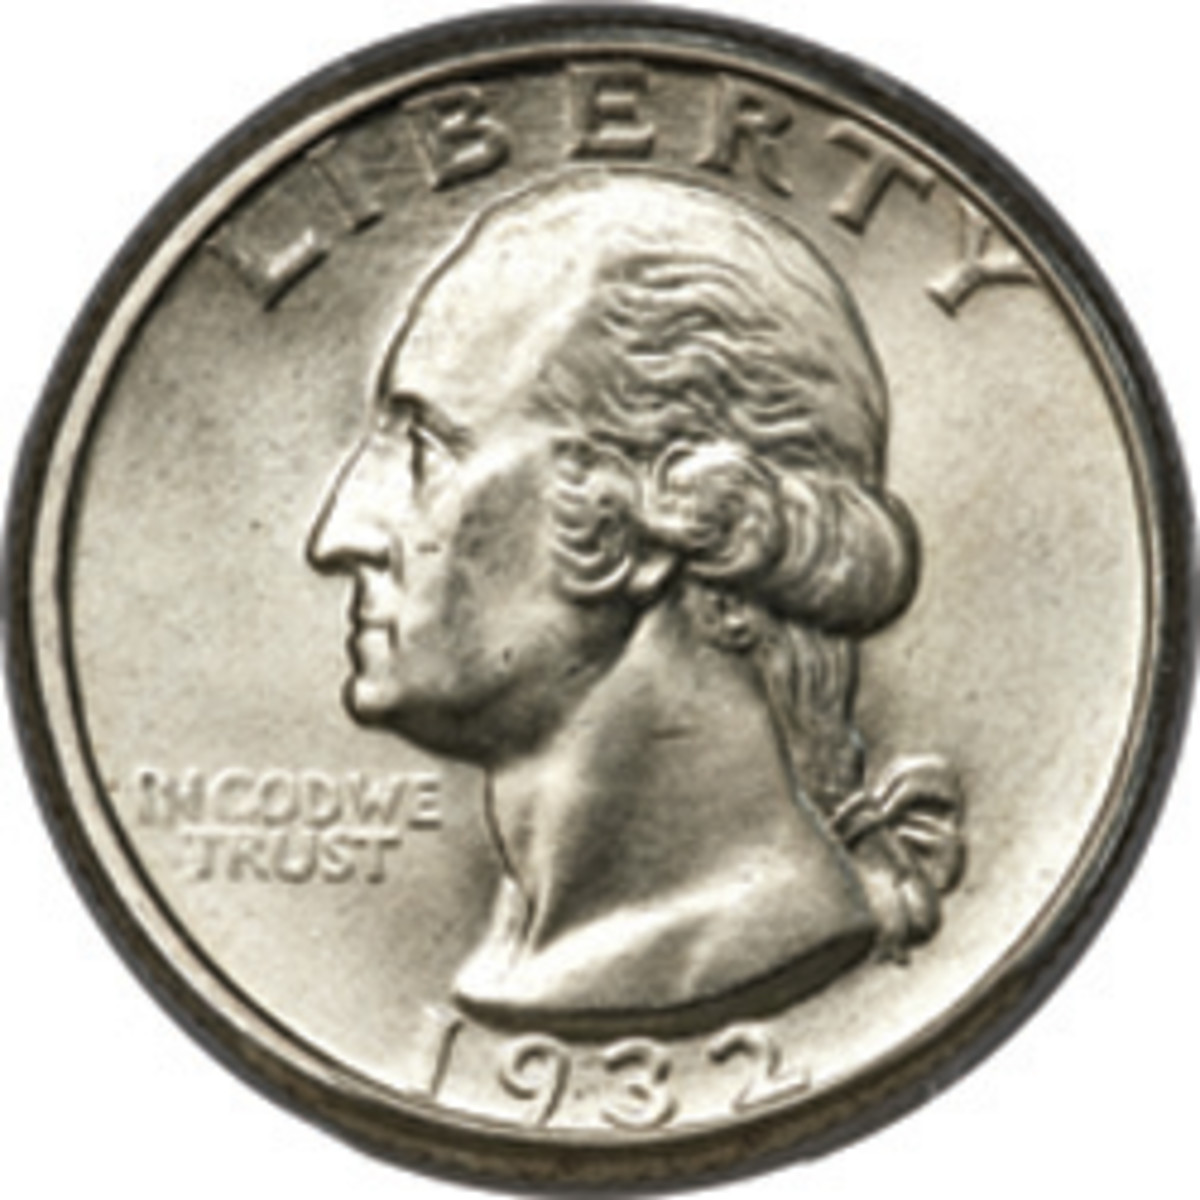 The bicentennial of George Washington's birth prompted his likeness on the quarter in 1932.